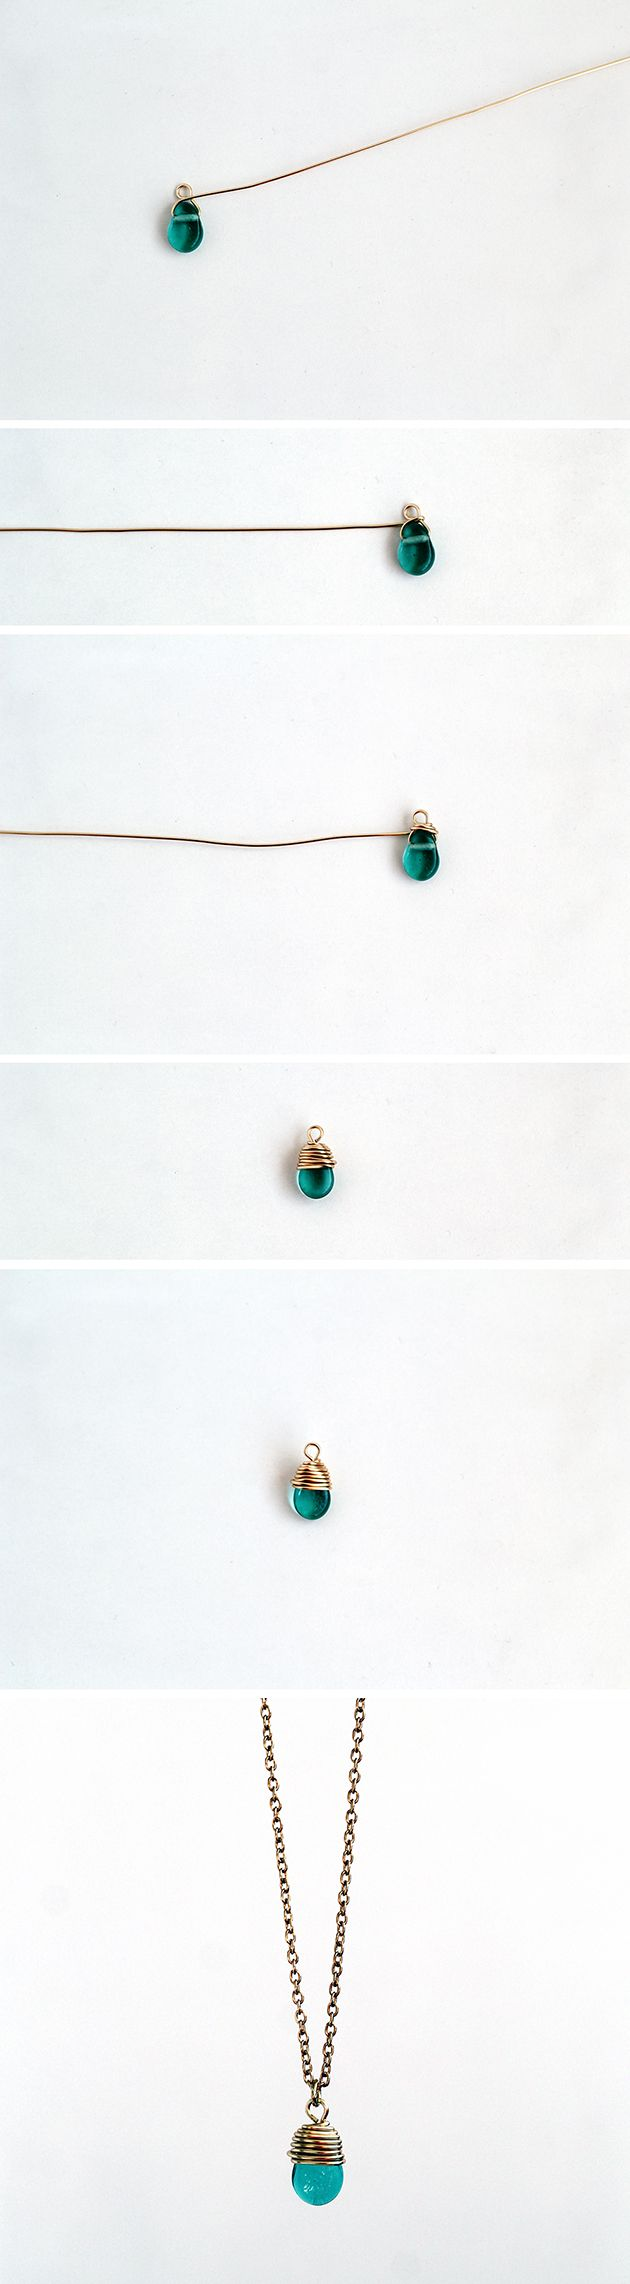 How To Wrap a Bead Fall For DIY